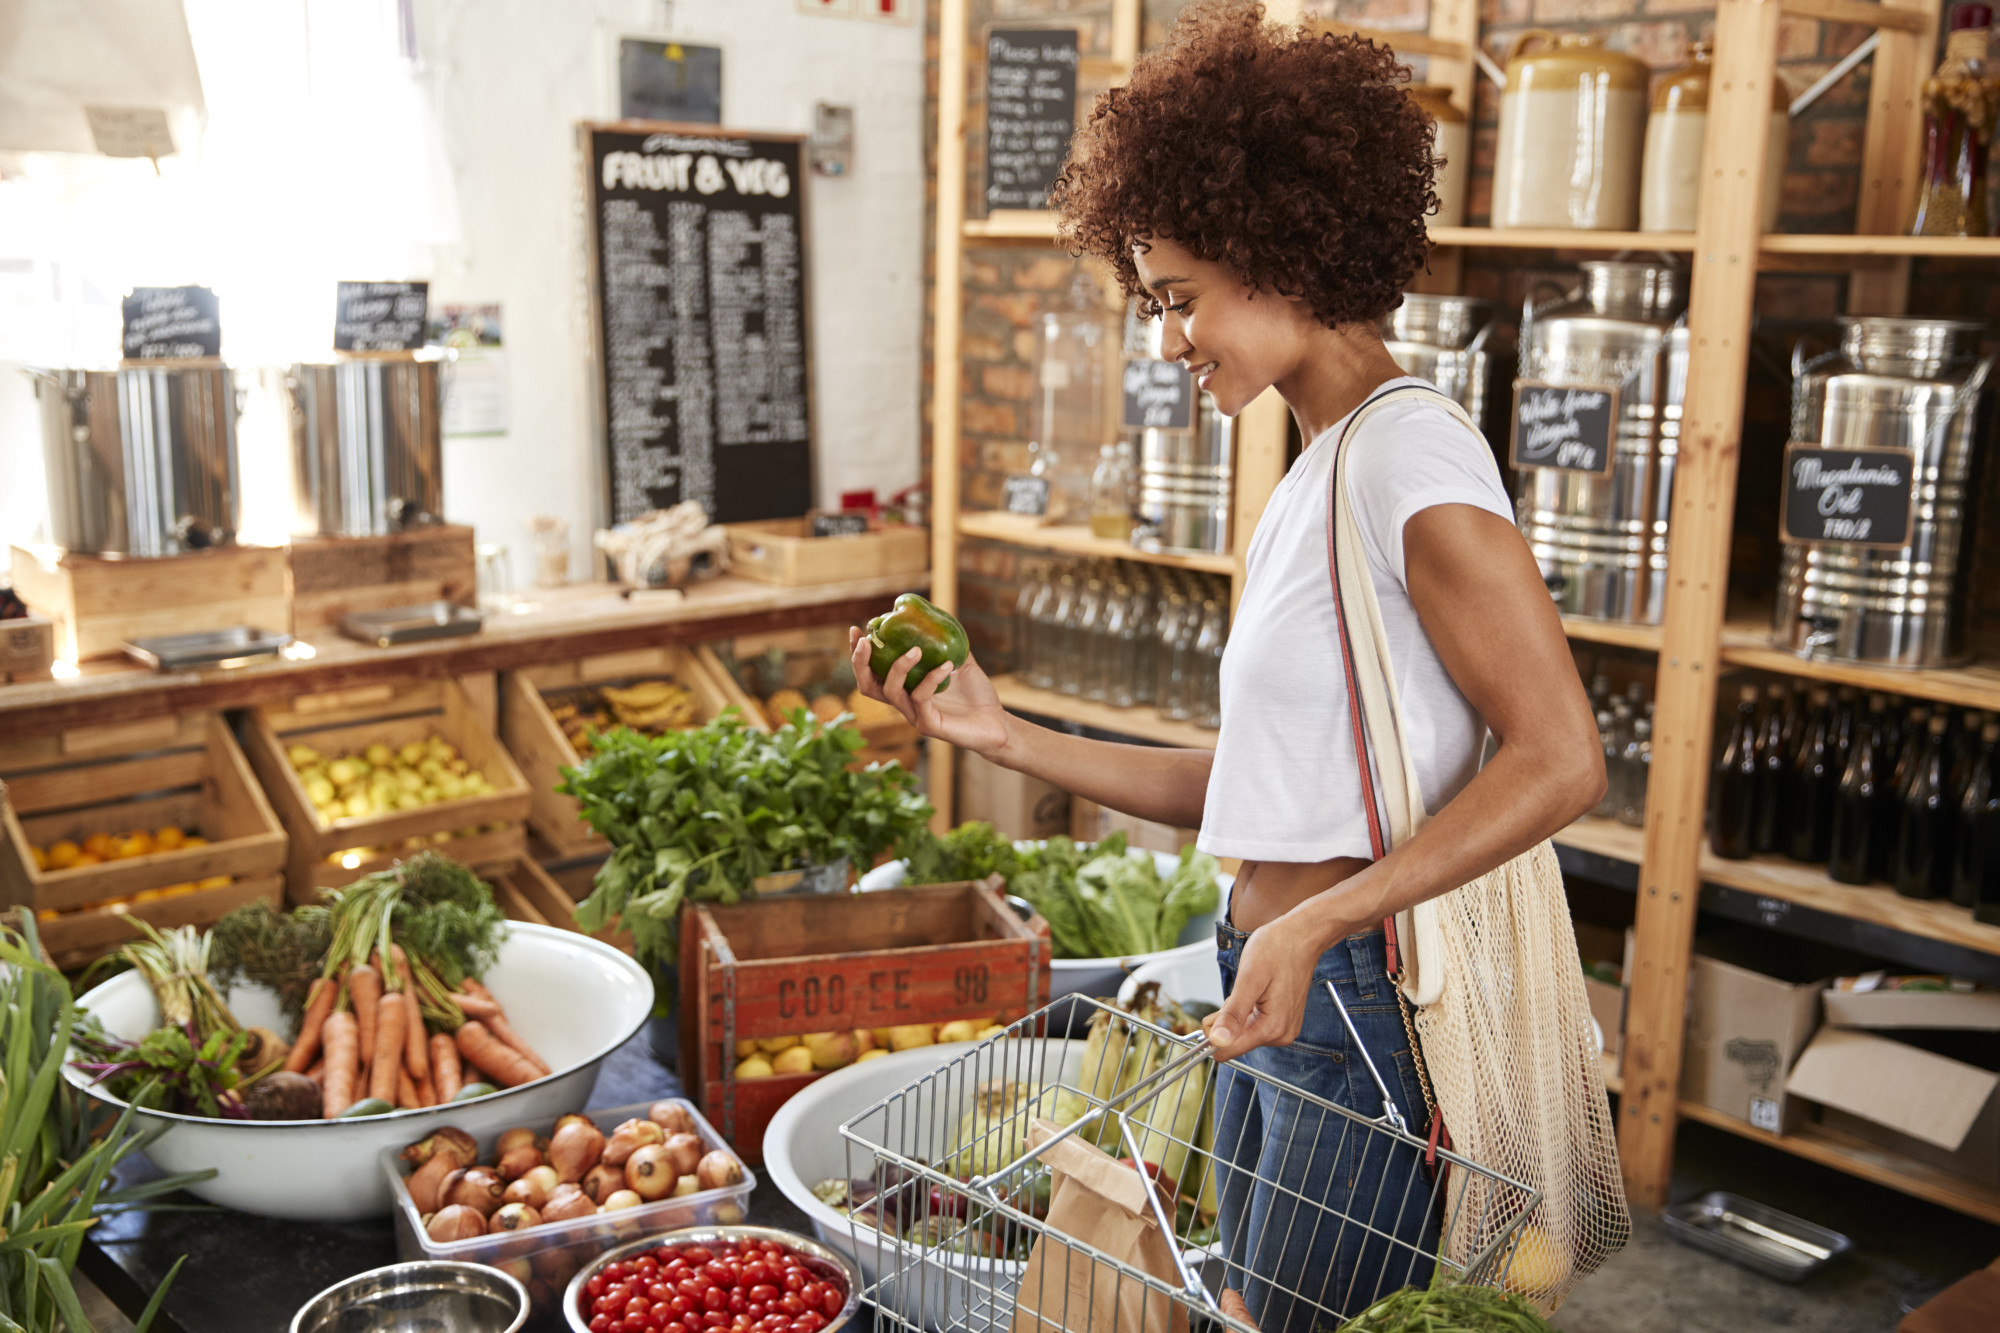 Green Grocery: 5 Easy Sustainable Shopping Tips